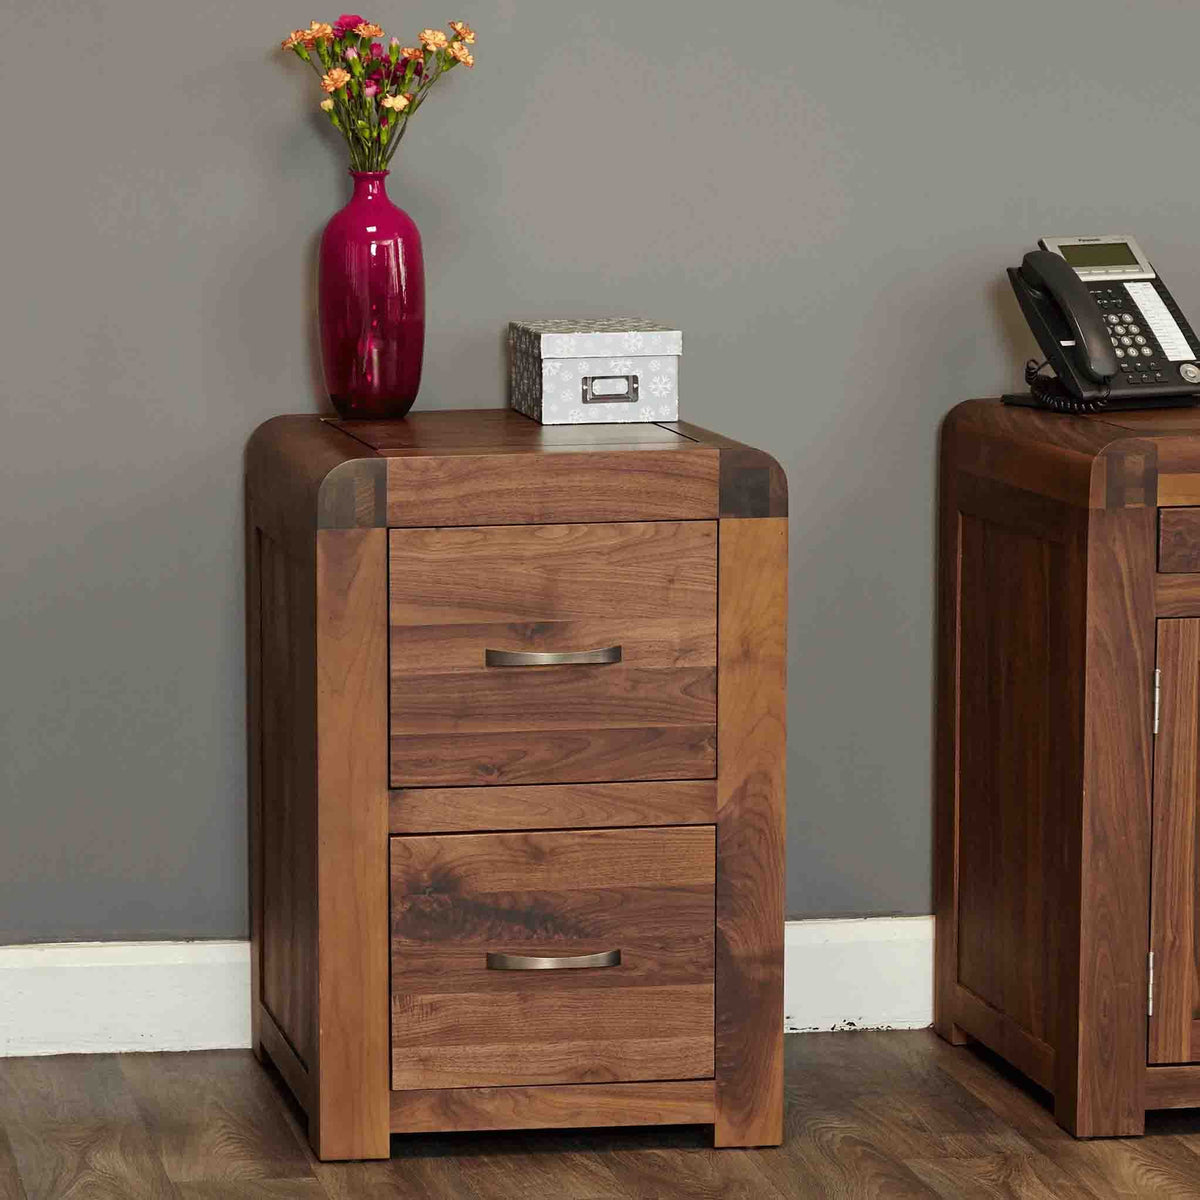 The Salem Walnut Small Wooden Office Filing Cabinet from Roseland Furniture